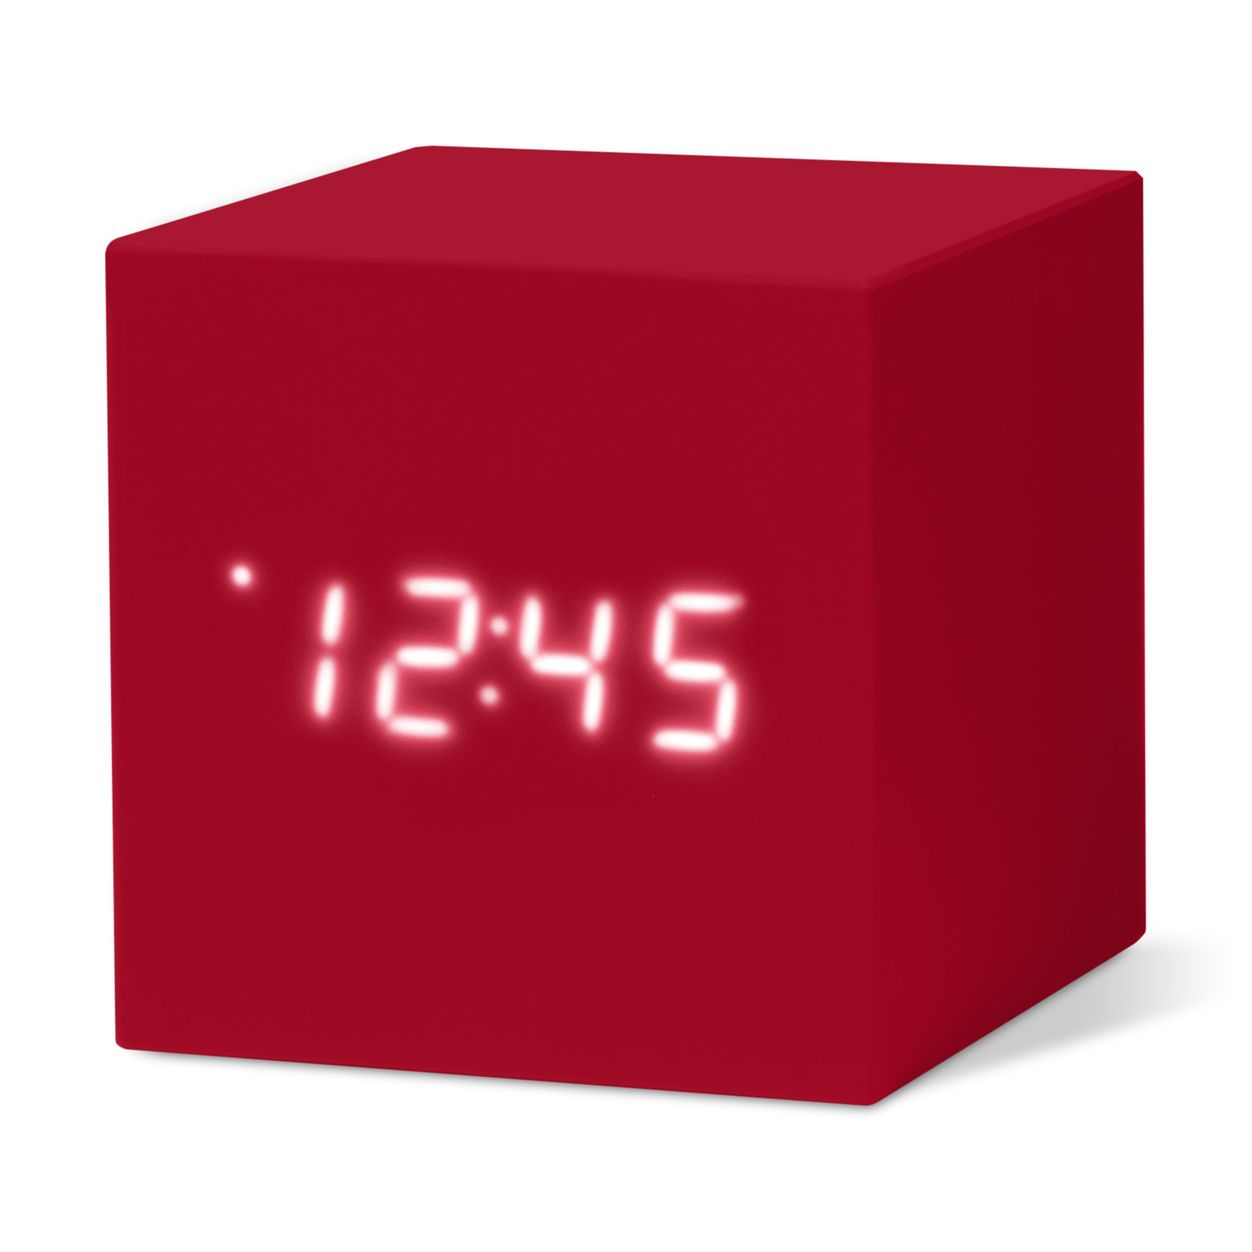 Colour Cube Clocks Alarm Clocks MoMA - der ZEITGEIST